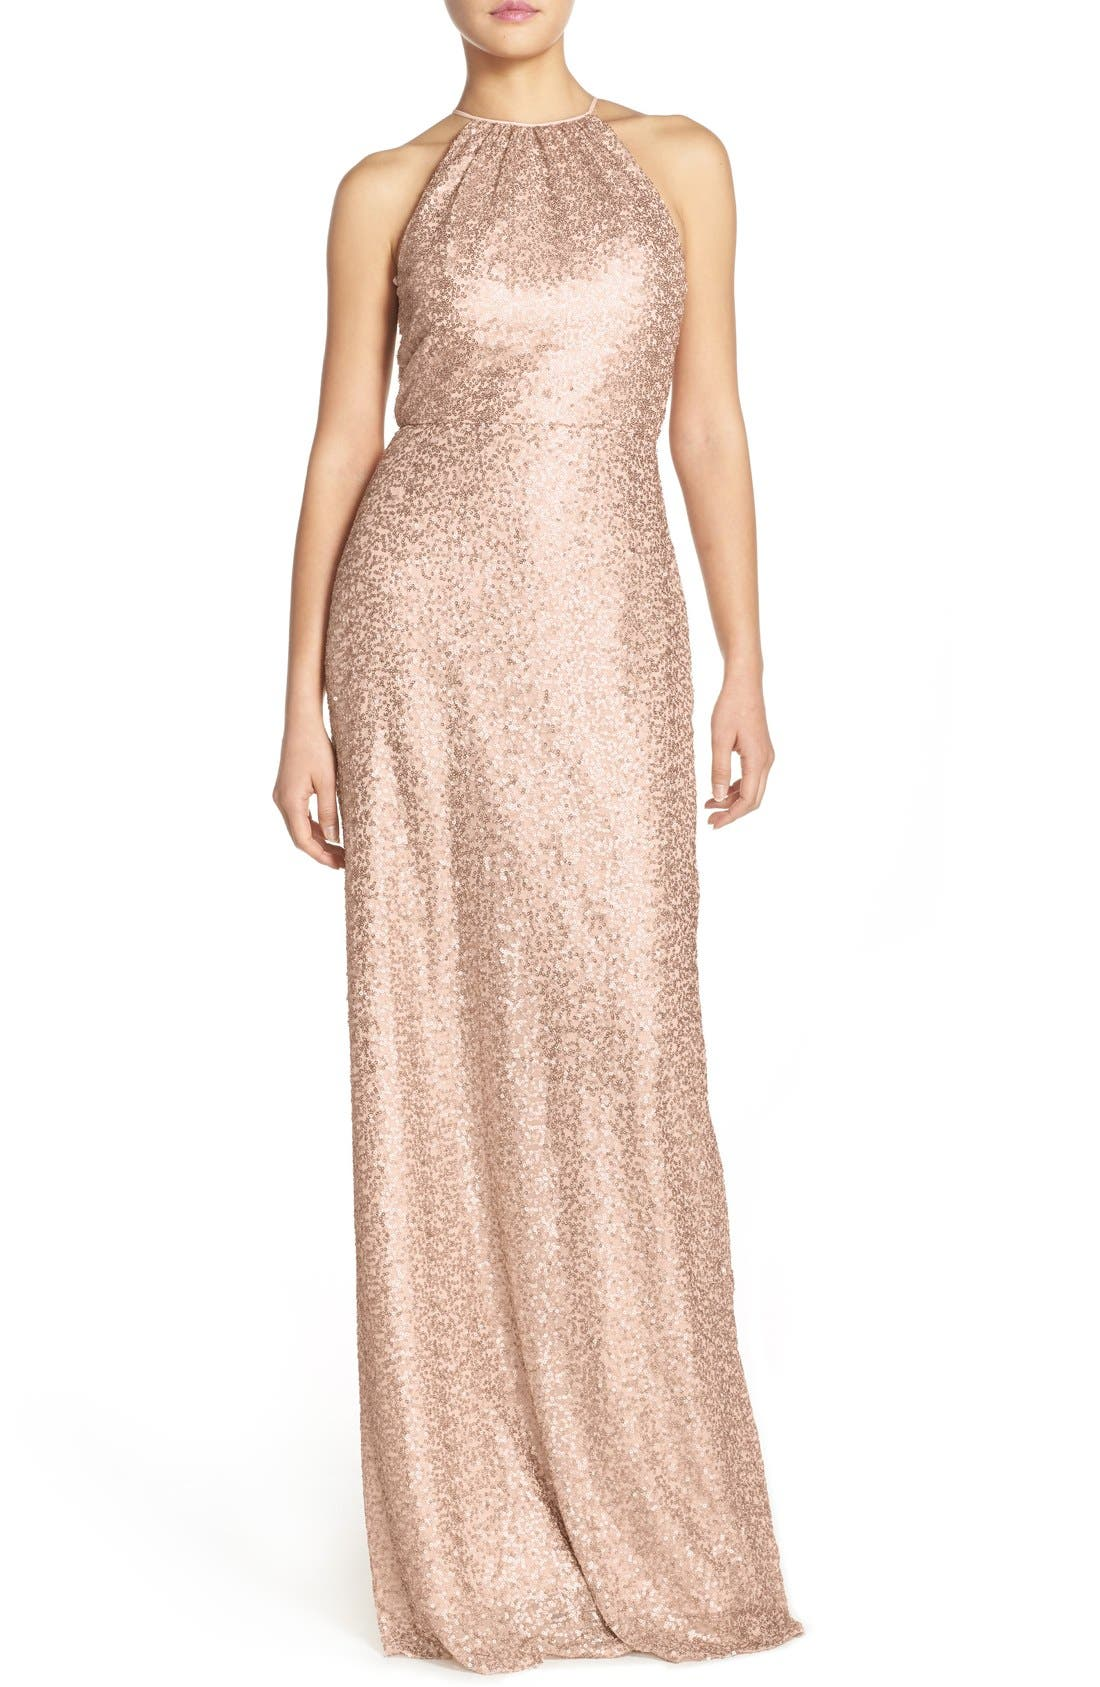 'Chandler' Sequin Tulle Halter Style Gown,                             Main thumbnail 3, color,